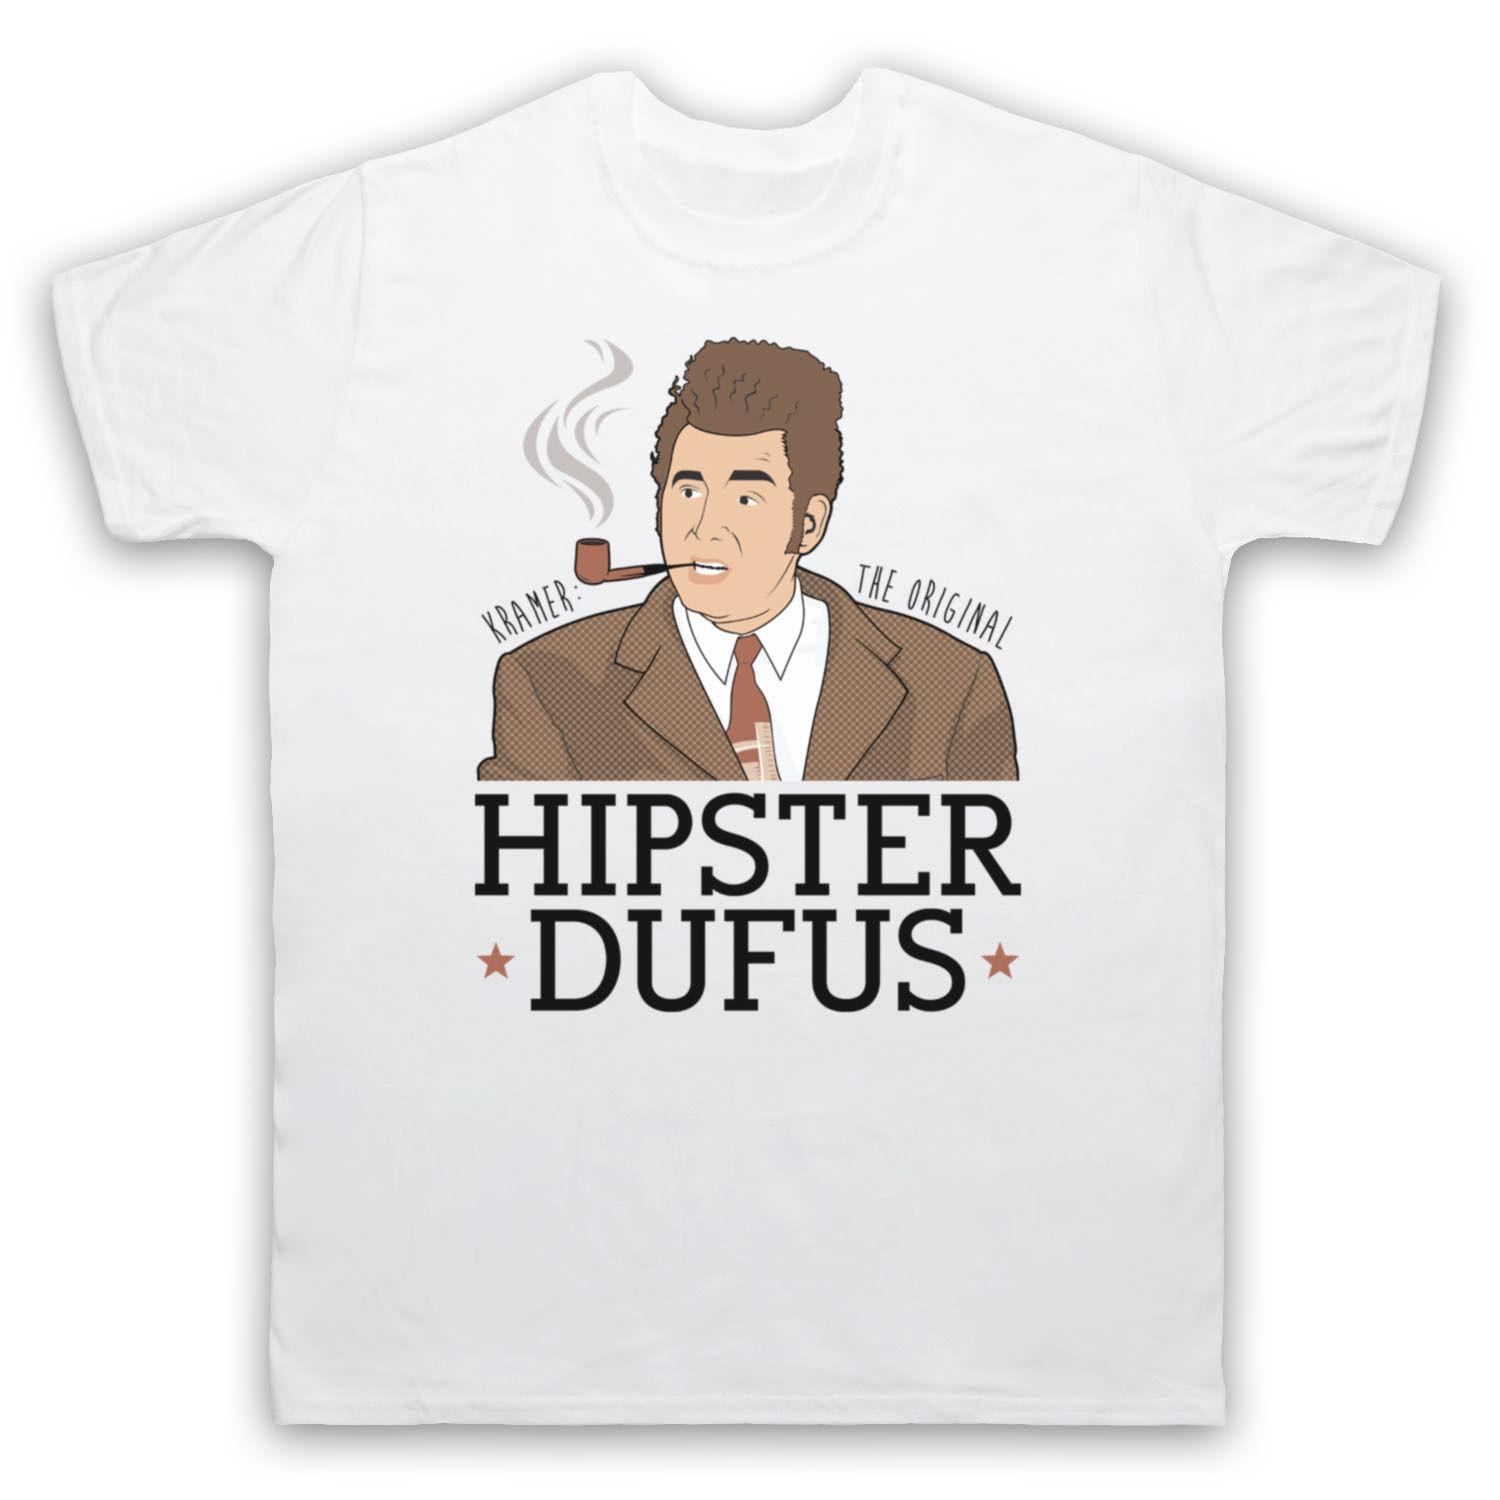 cafc9268 Cosmo Kramer Hipster Dufus Unofficial Seinfeld T Shirt Adults & Kids Sizes  Cols White T Shirts Offensive T Shirts From Cozyroam, $24.2| DHgate.Com